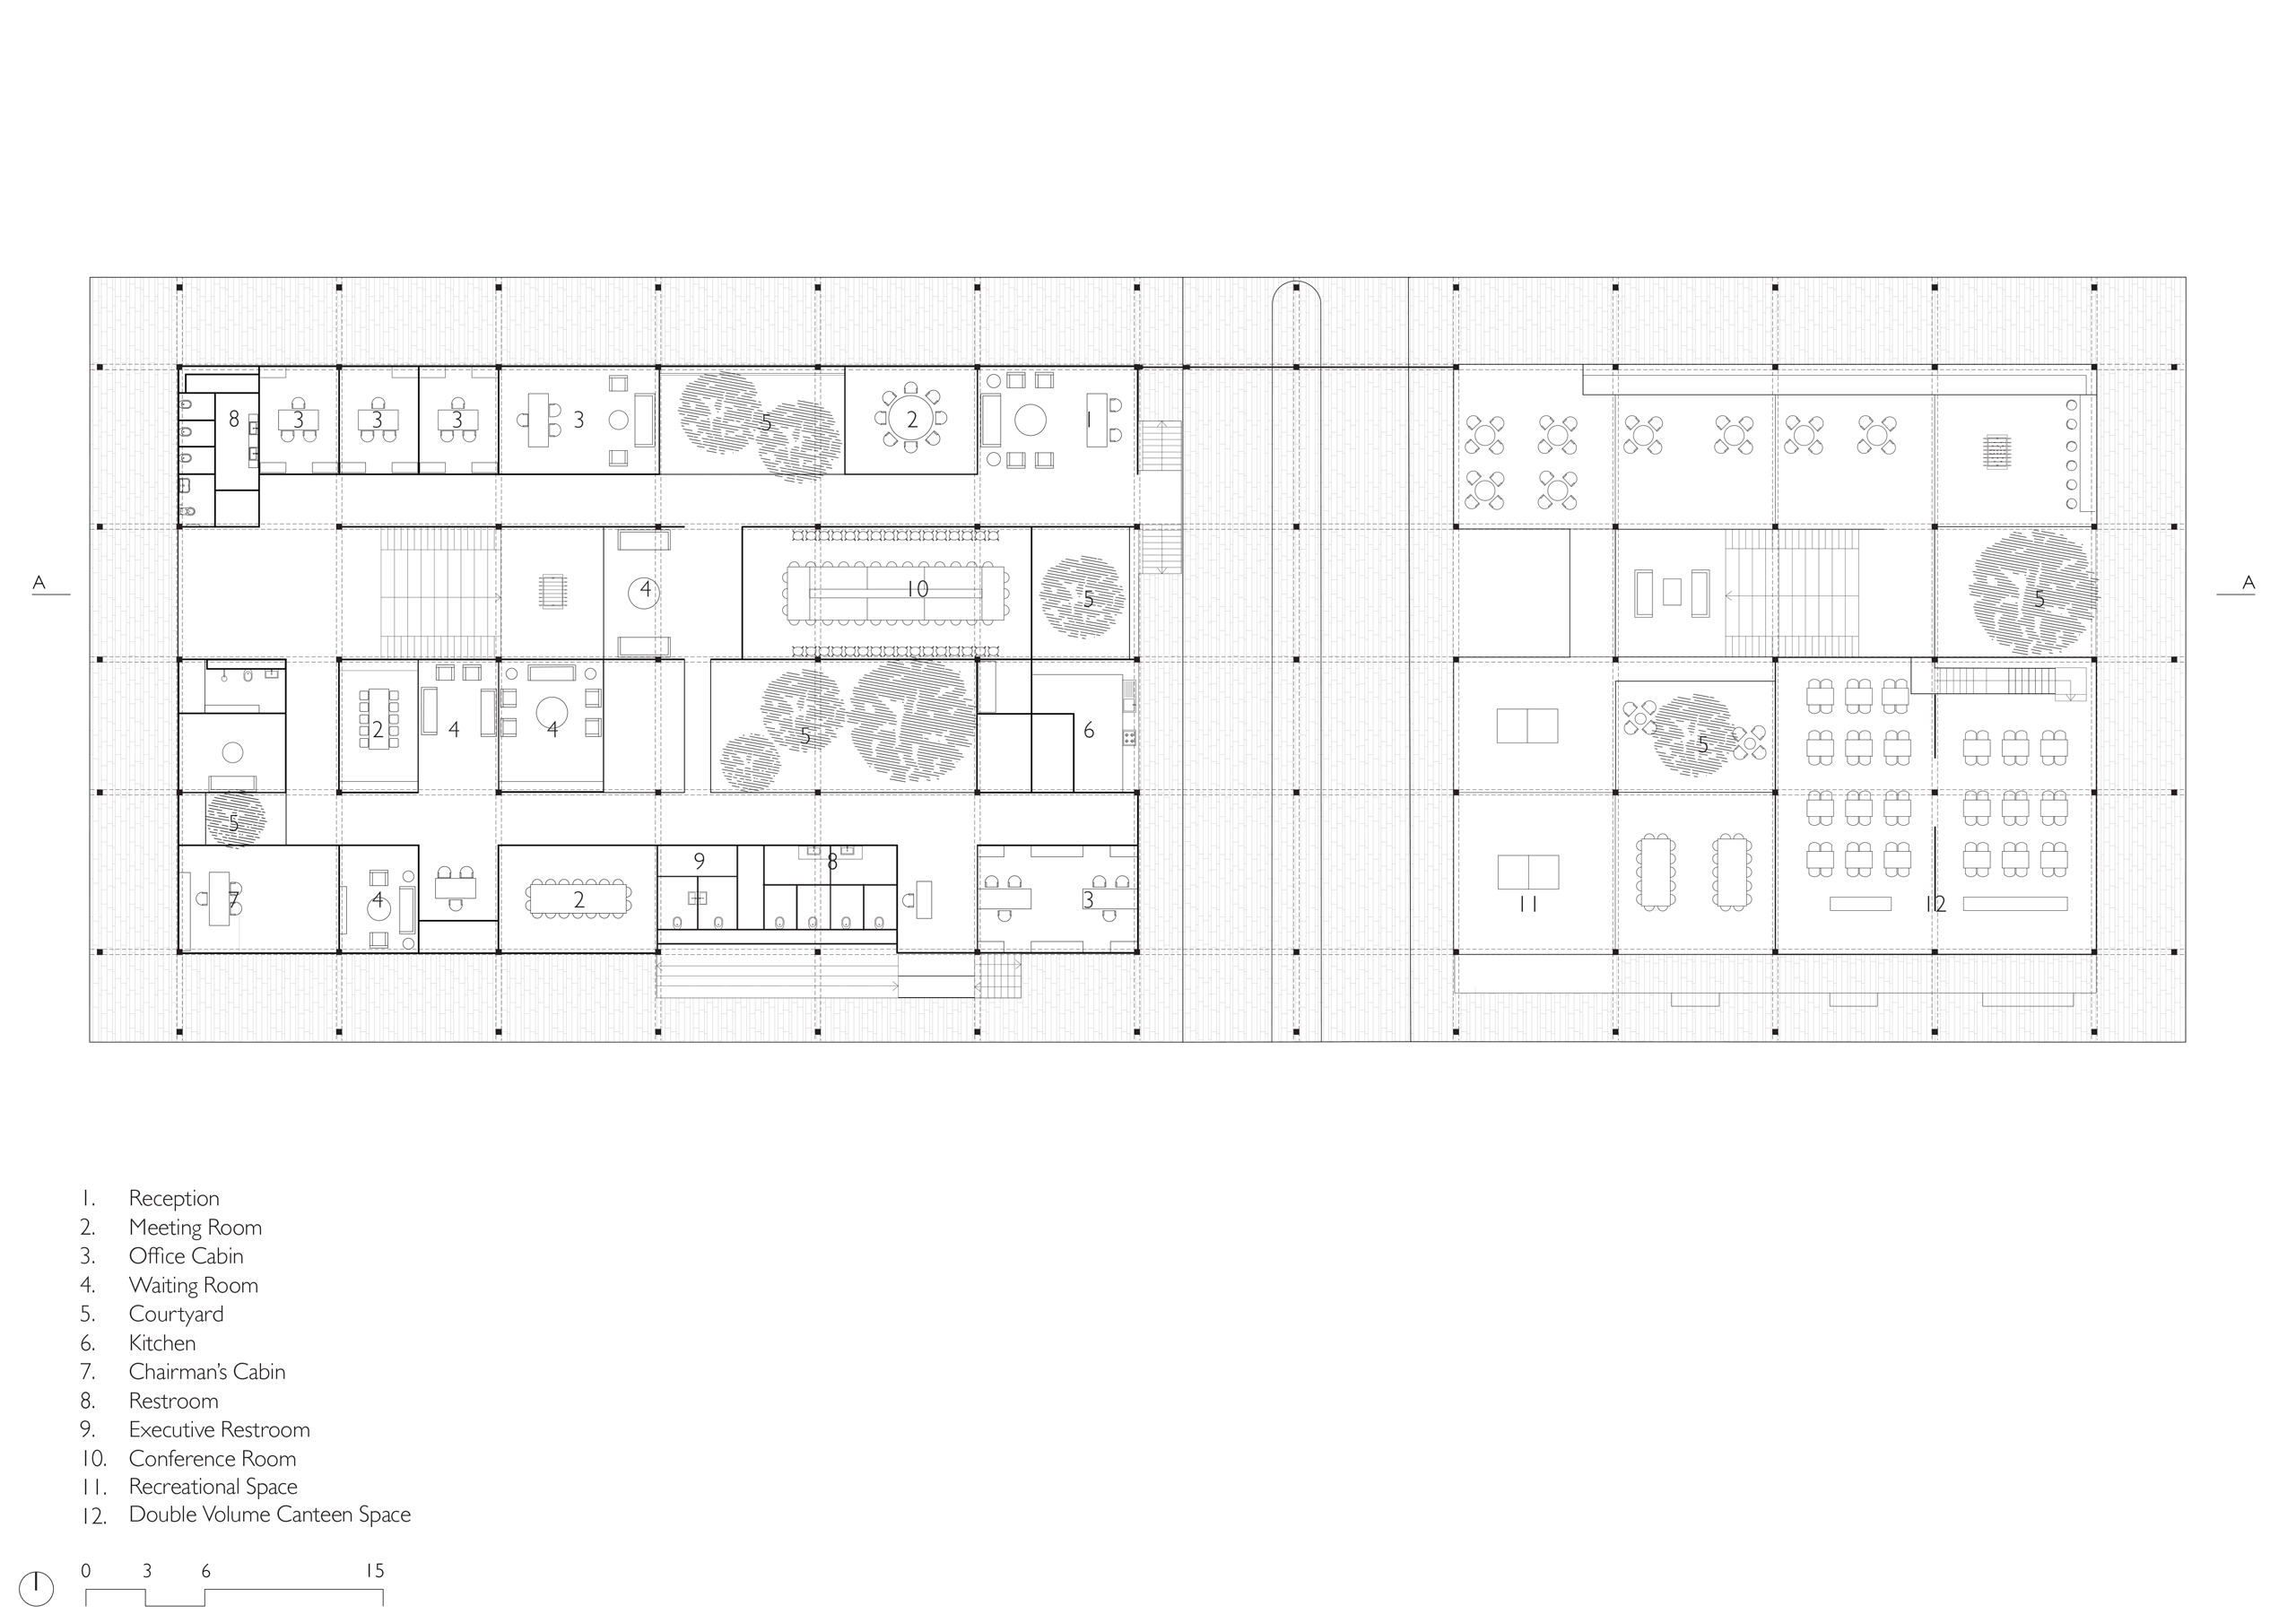 Upper Floor Plan of Administration Building in Latur, India